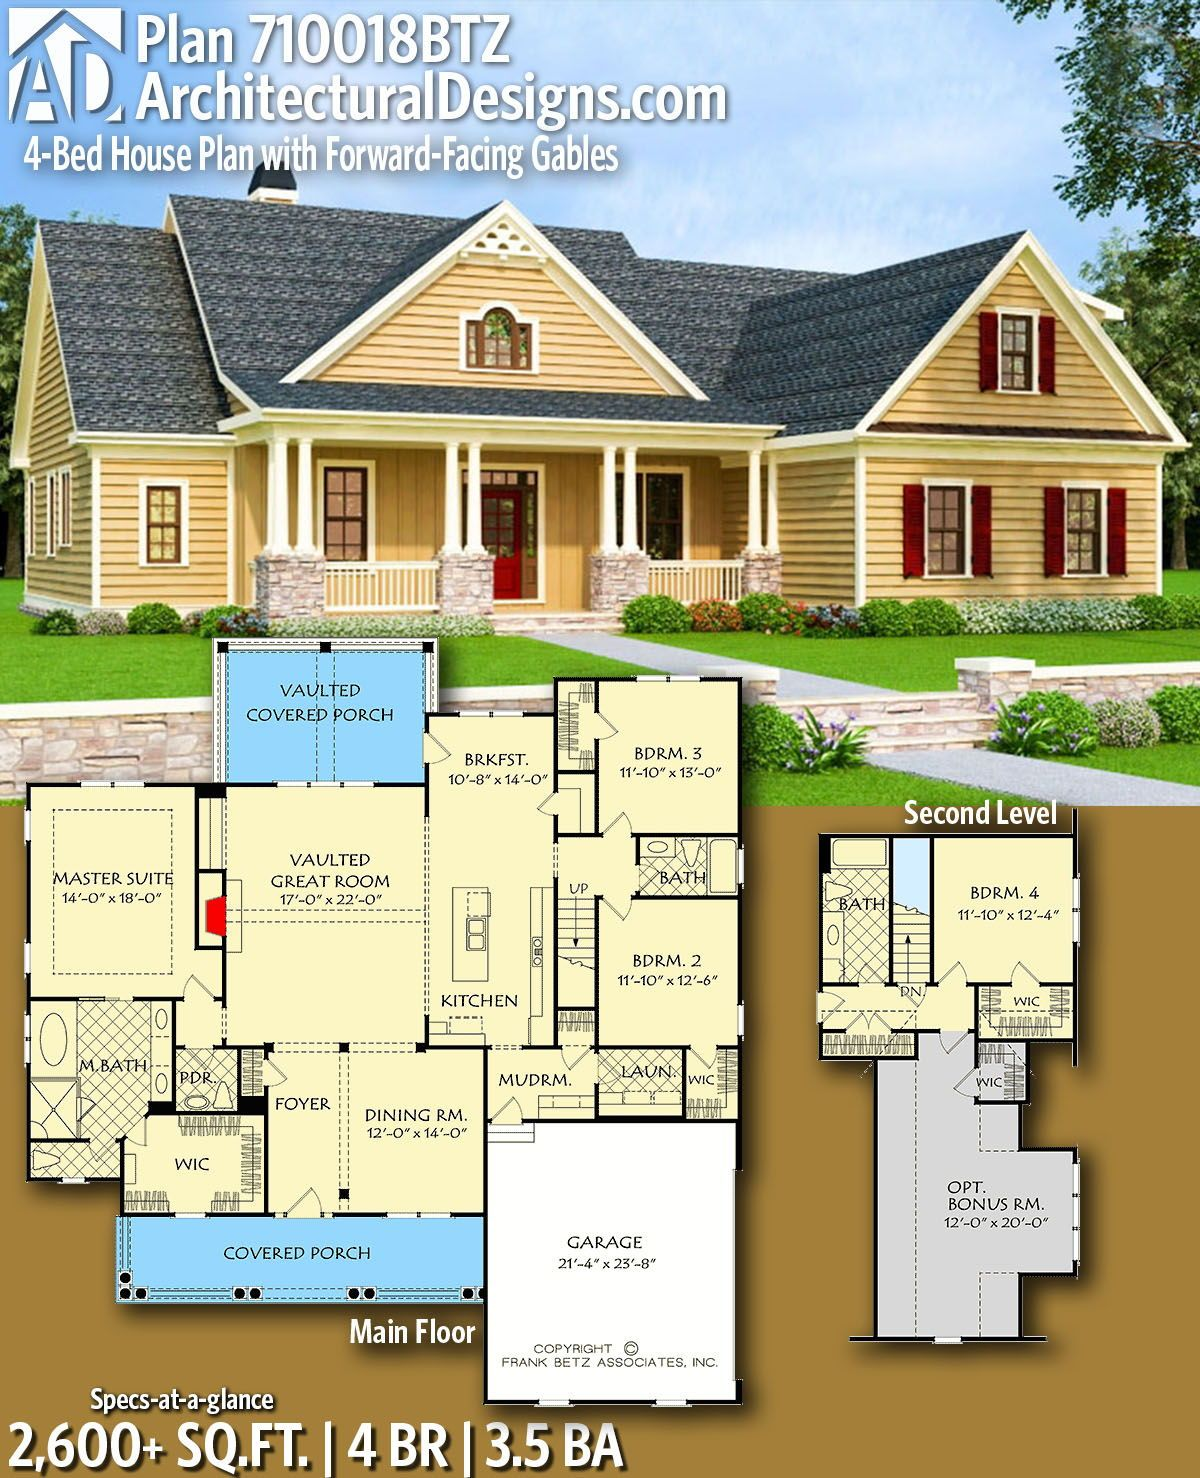 House Plans 12x8 With 3 Bedrooms Gable Roof Sam House Plans Architectural House Plans Beautiful House Plans House Plan Gallery